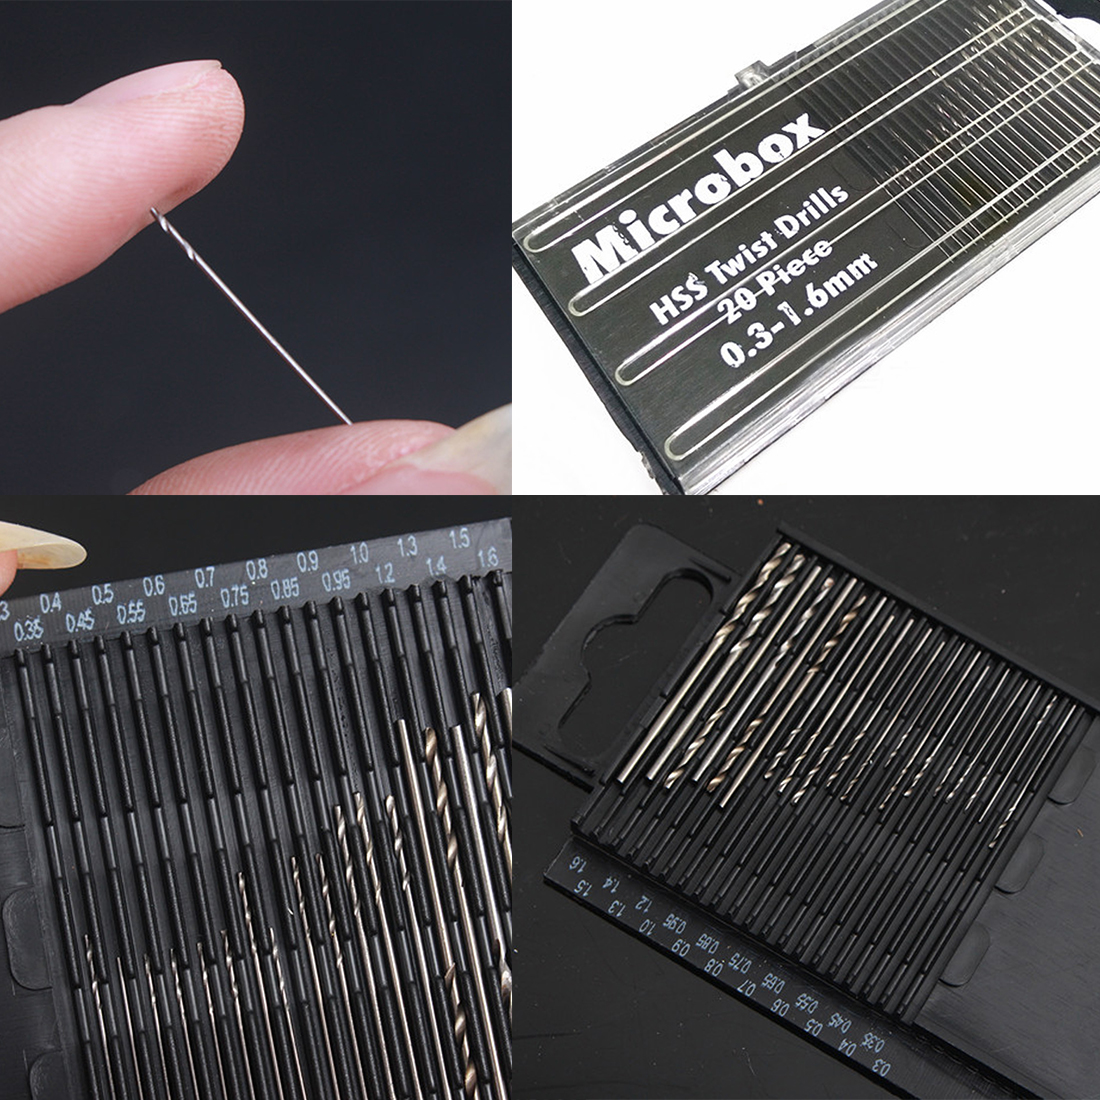 20Pcs Mini Drill Bit Set HSS Micro Twist Drill Bit Set 0.3mm-1.6mm Model Craft With Case Repair Tools Tiny Micro Twist Drill Bit 20pc micro twist drill bts set with double end pin vises jewelry watch tool brass joyeria tools ferramentas jewelry tools